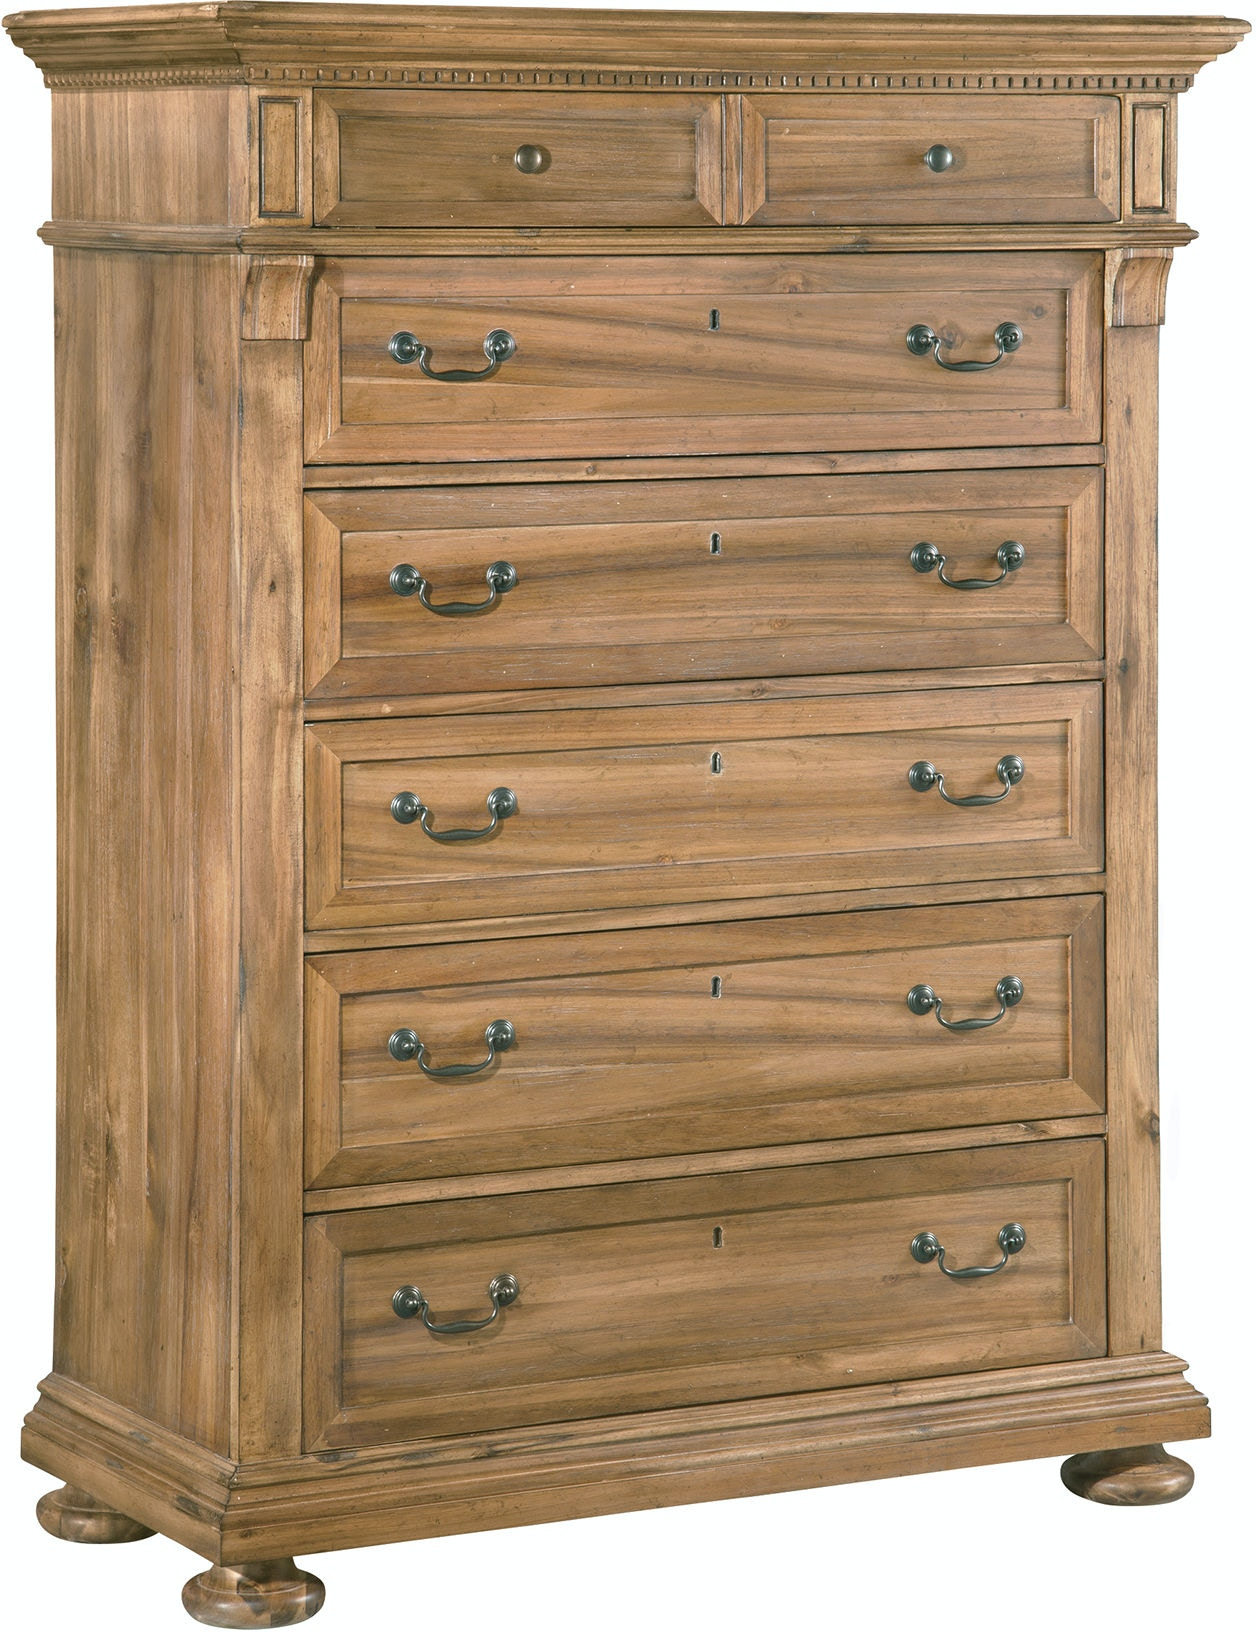 mirror cabinet hekman bedroom chest 23361 charter furniture dallas 23368